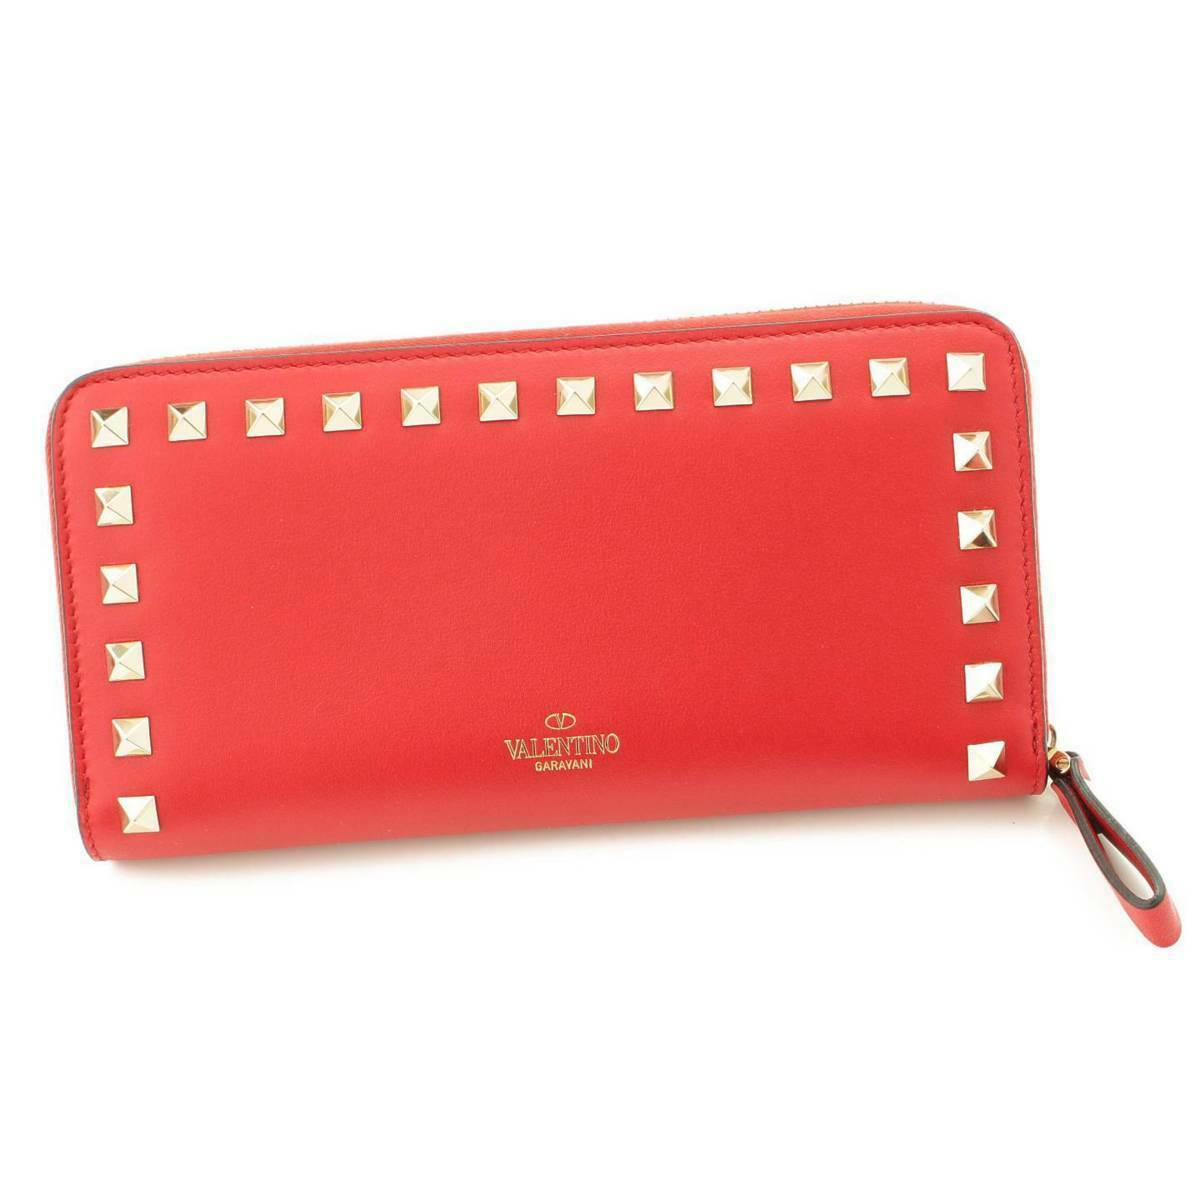 Authentic Valentino Rockstud Round Zipper Wallet QW2P0645BOL Red Never Used